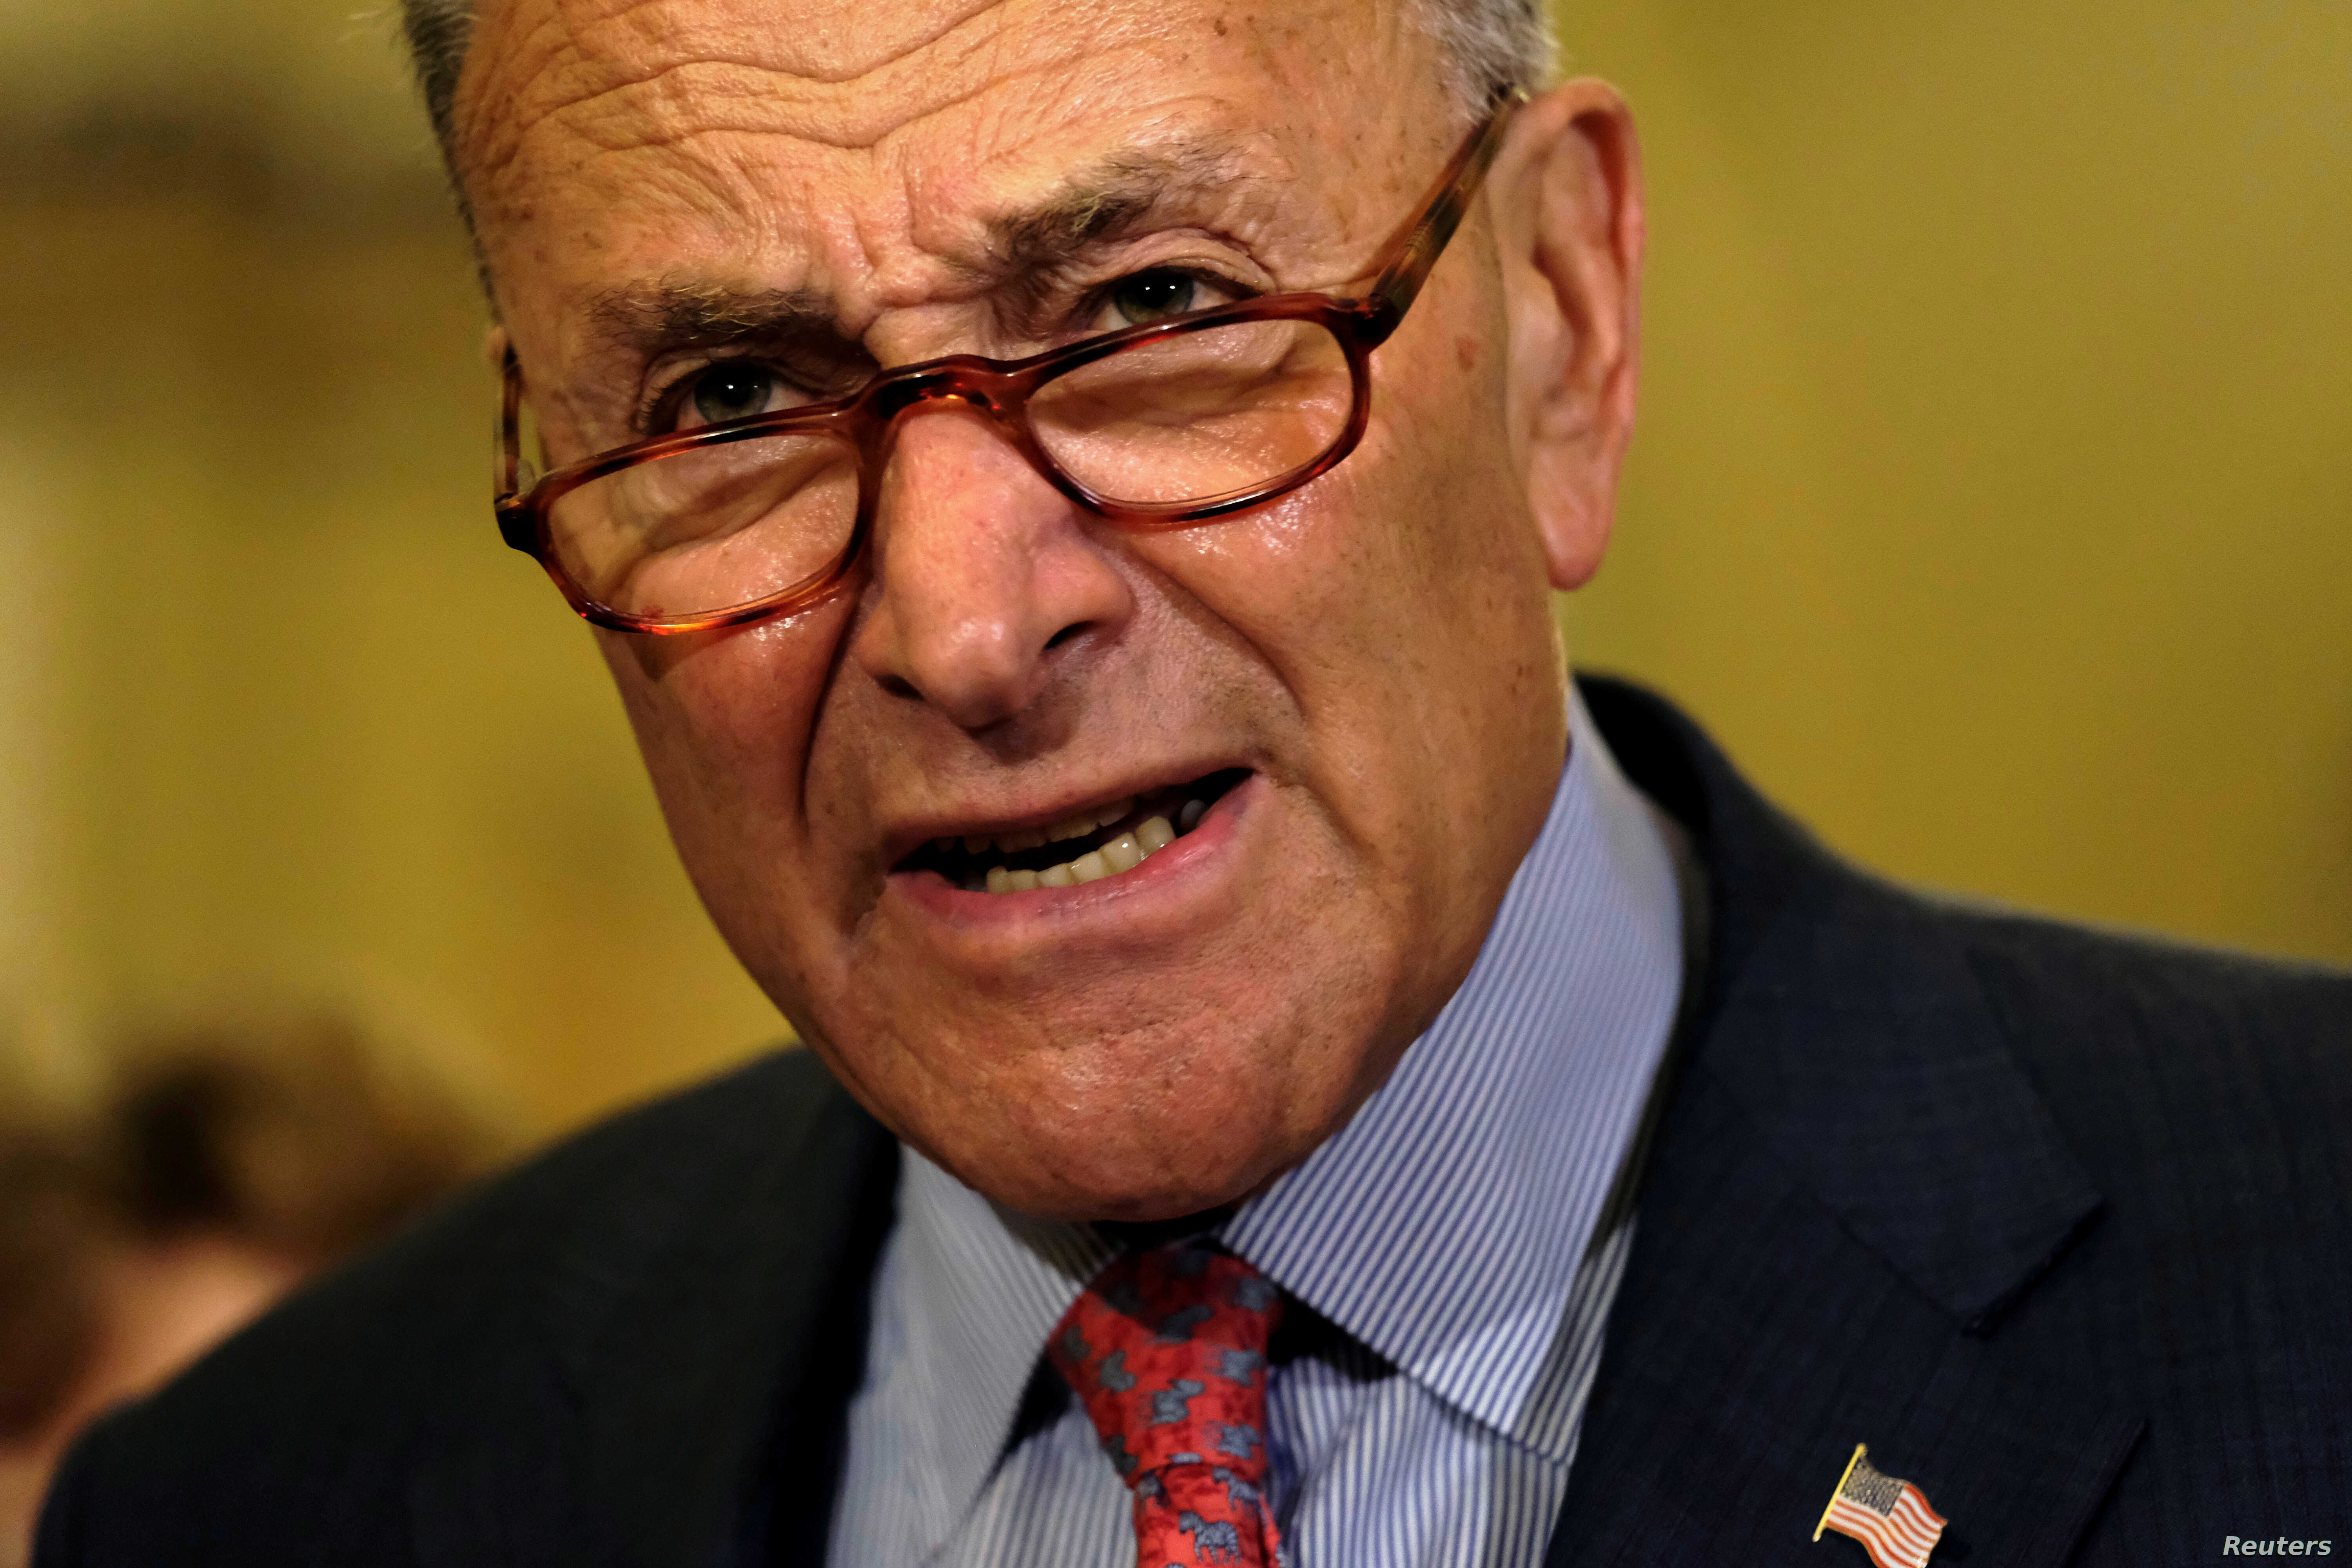 U.S. Senate Minority Leader Chuck Schumer (D-NY) speaks to reporters at the Capitol as fallout continued over U.S. President Donald Trump's Helsinki summit with Russian President Vladimir Putin, in Washington, U.S., July 17, 2018.